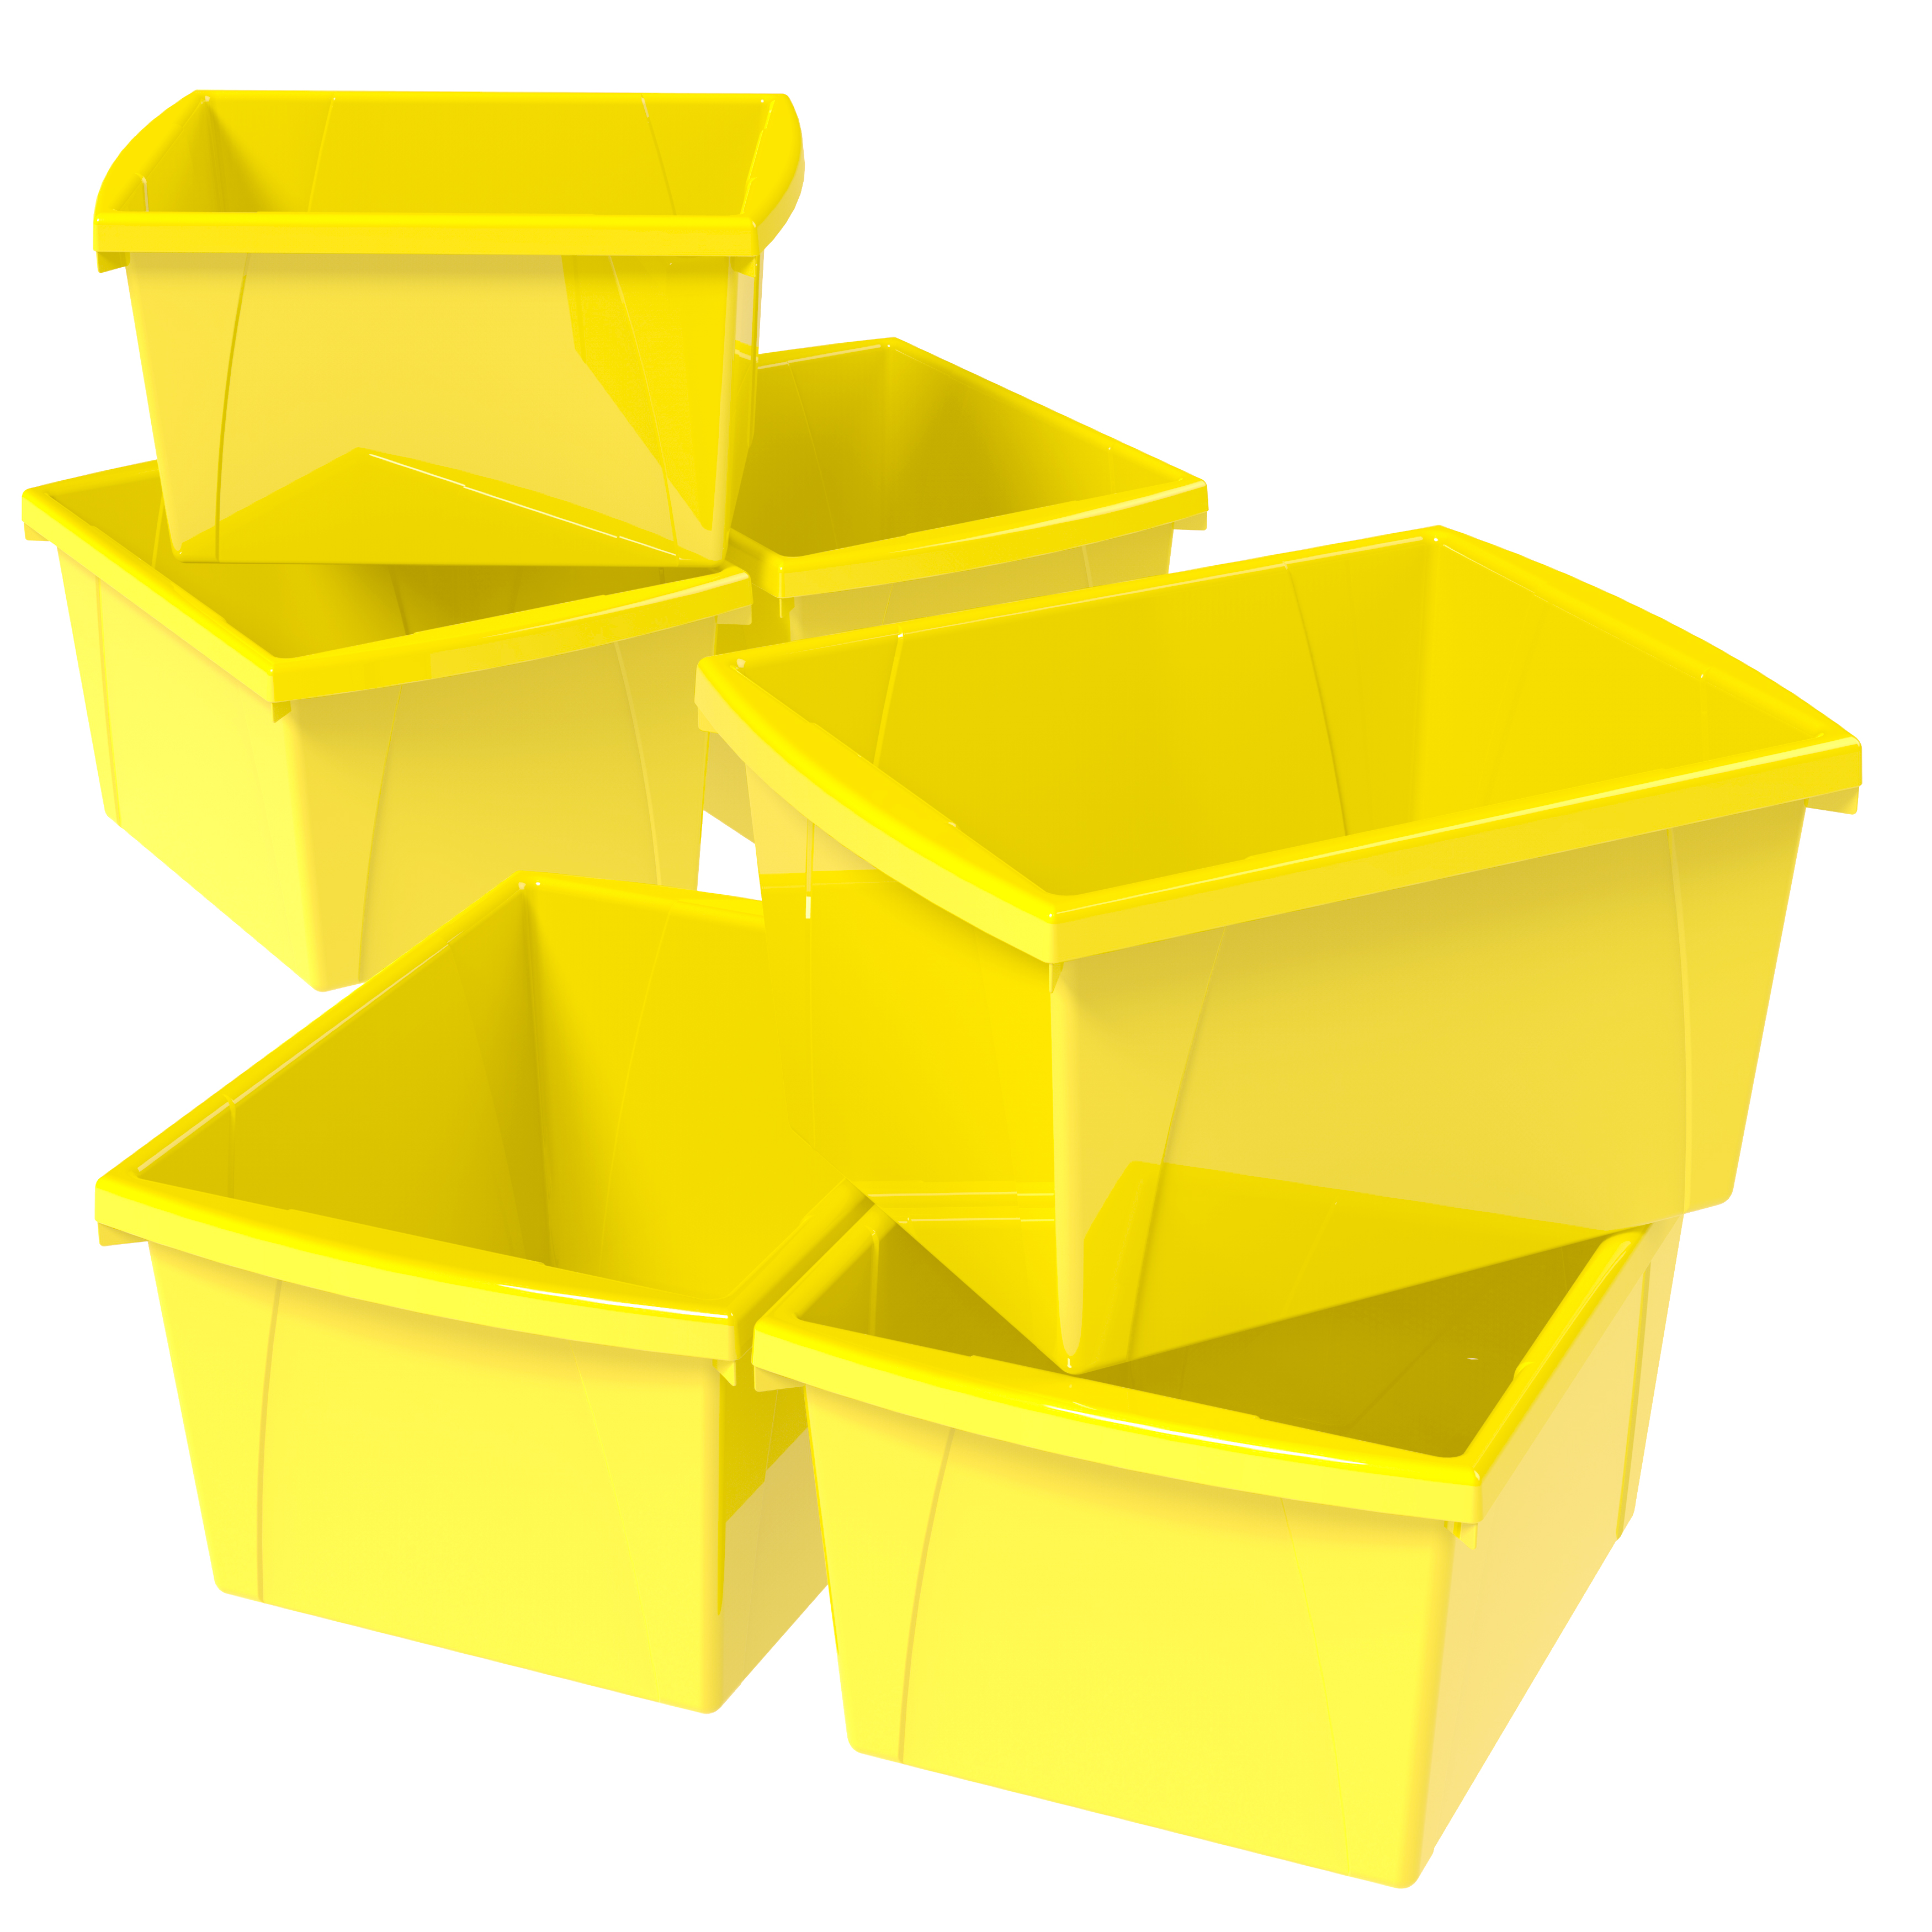 Storex 4 Gallon/15 L Classroom Storage Bin,Yellow (6 units/pack)